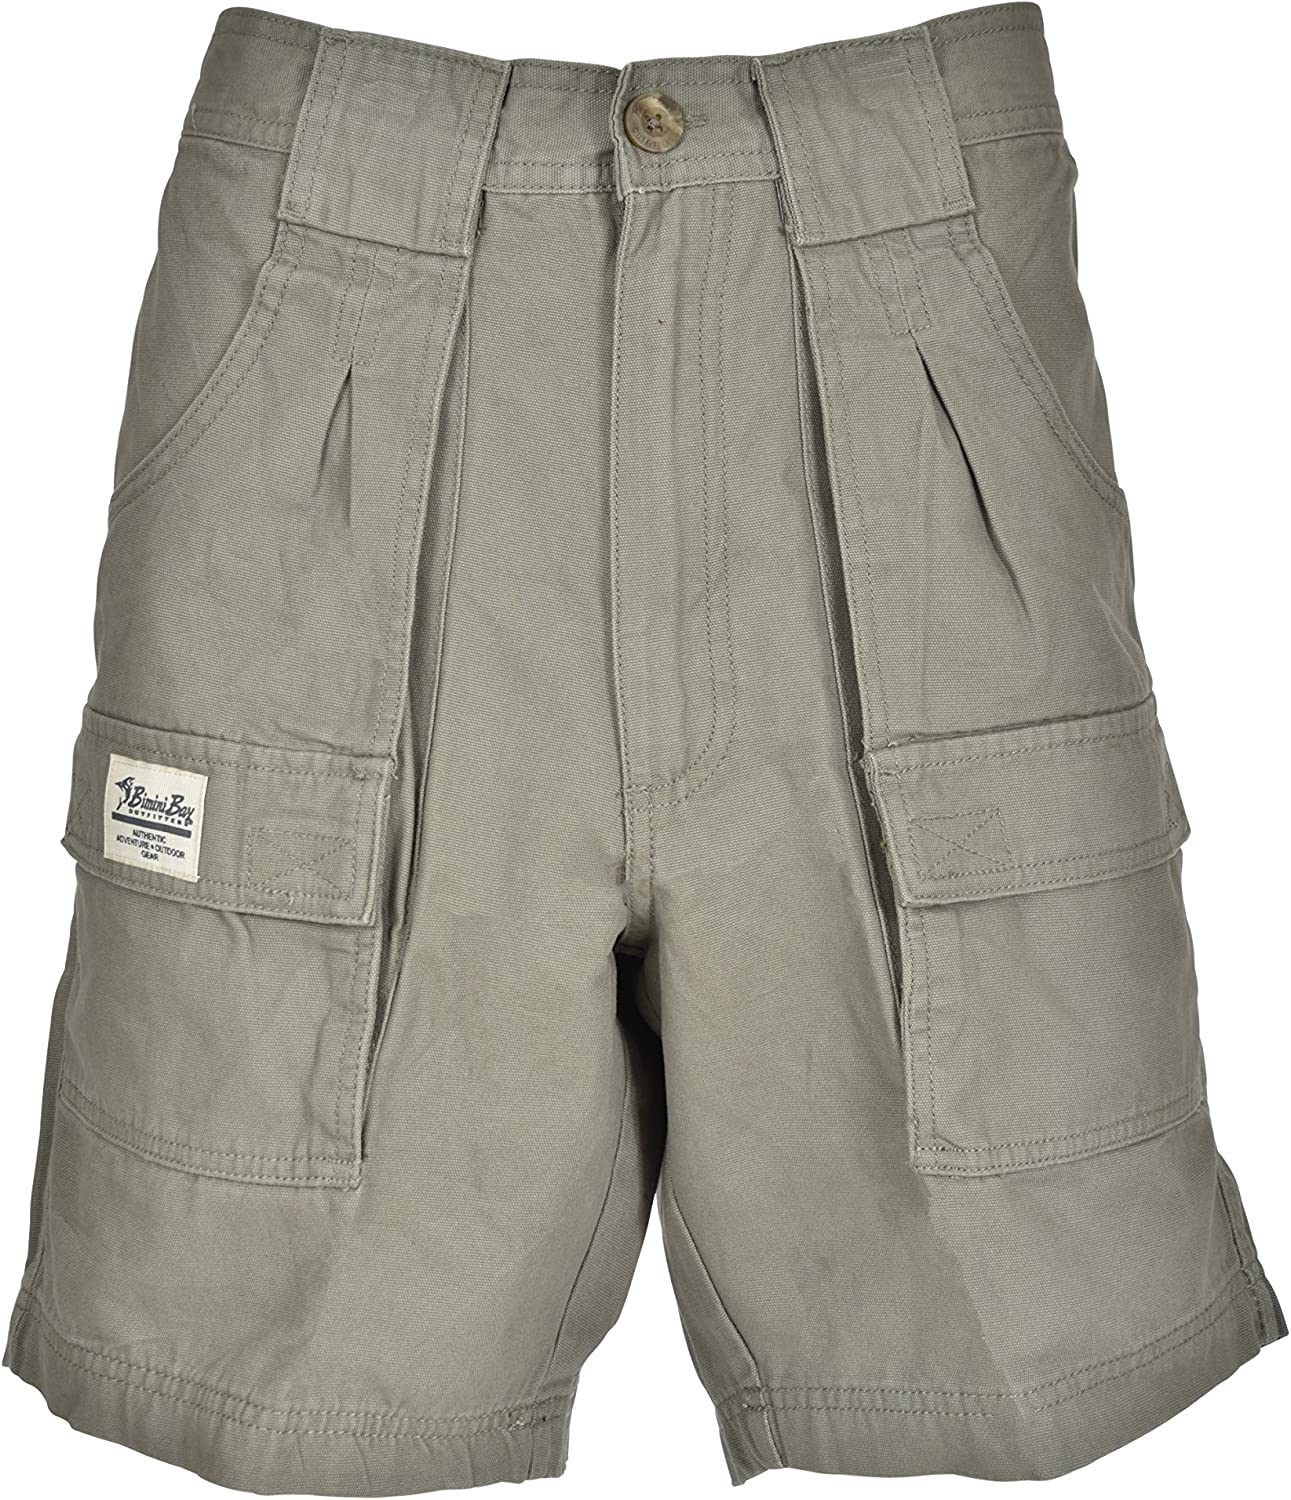 Bimini Bay Outfitters Outback Hiker Cotton Cargo Short Green -